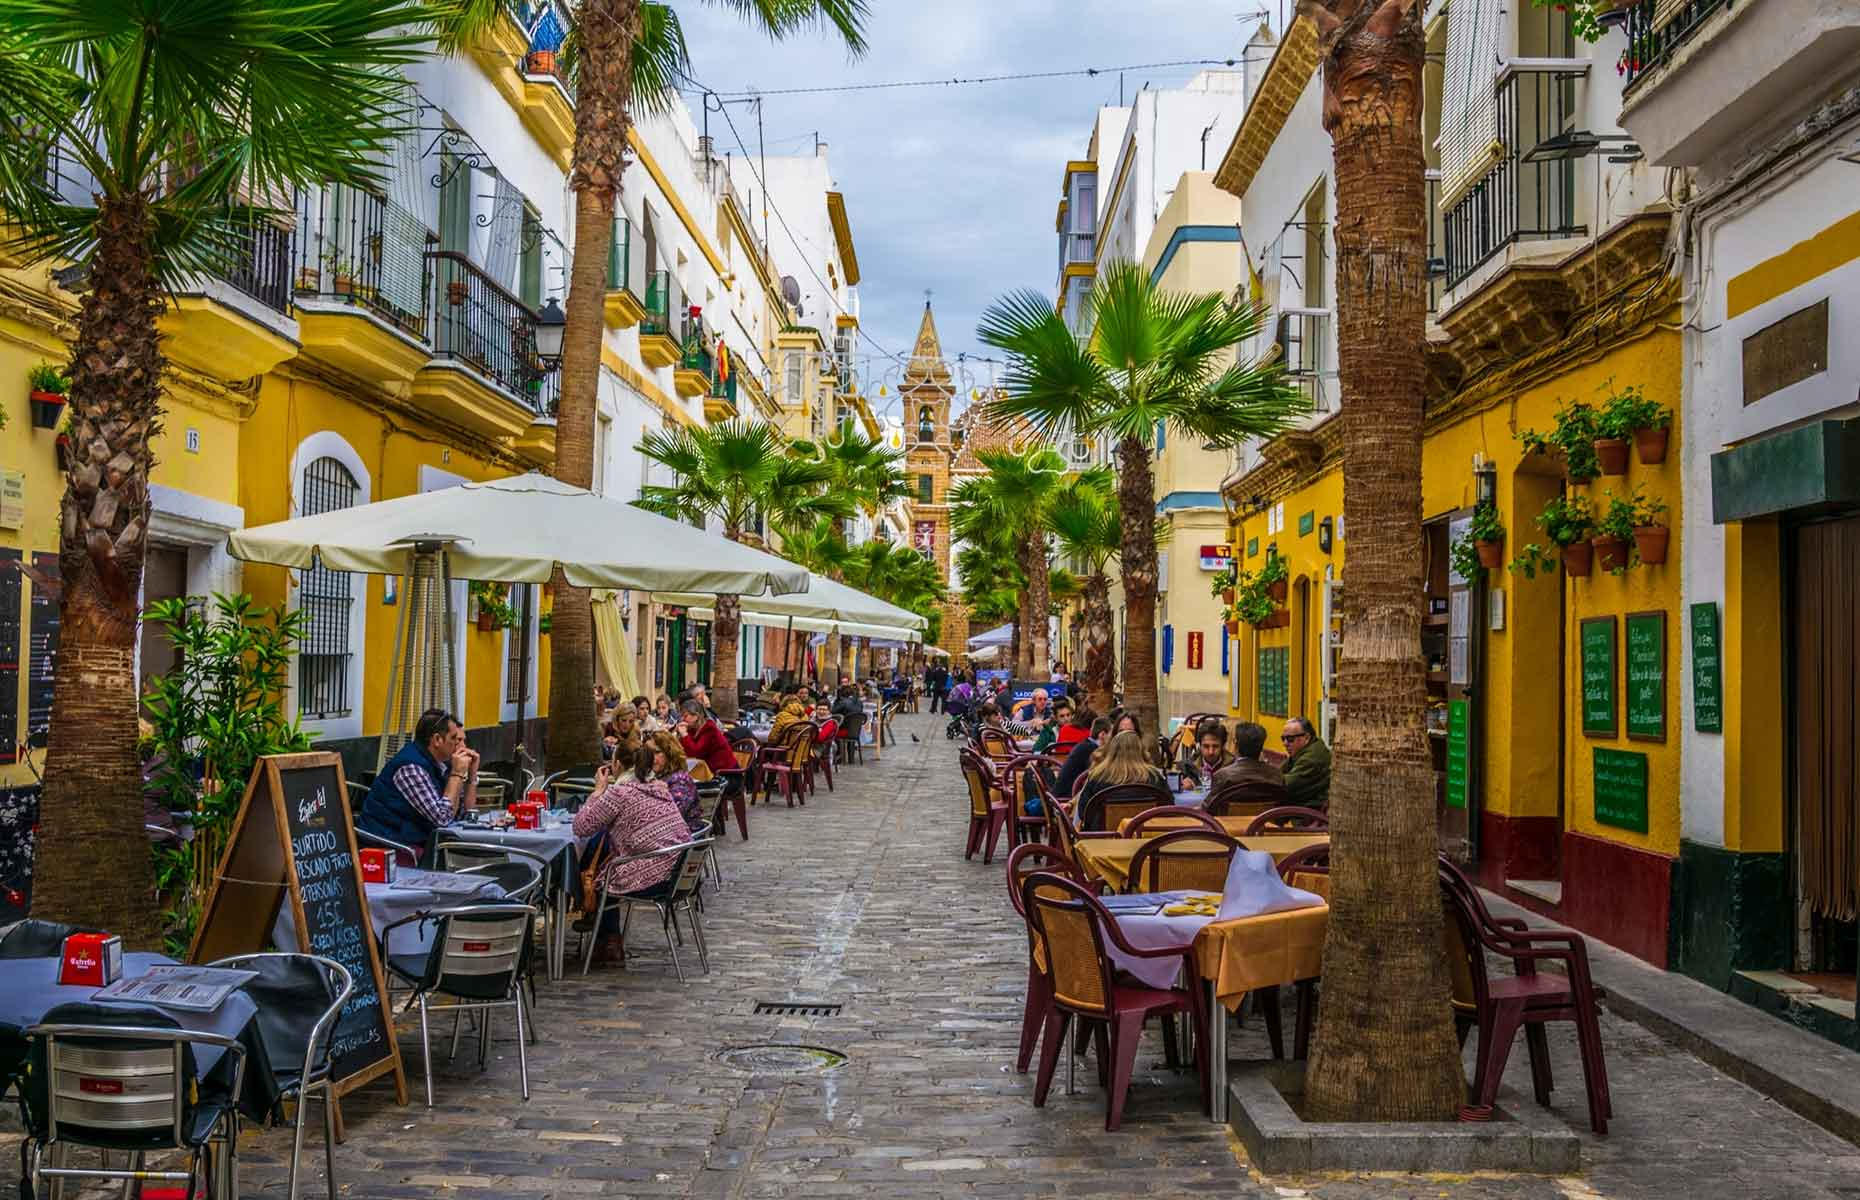 Yellow buildings and palm trees of Cadiz cafe and restaurant street